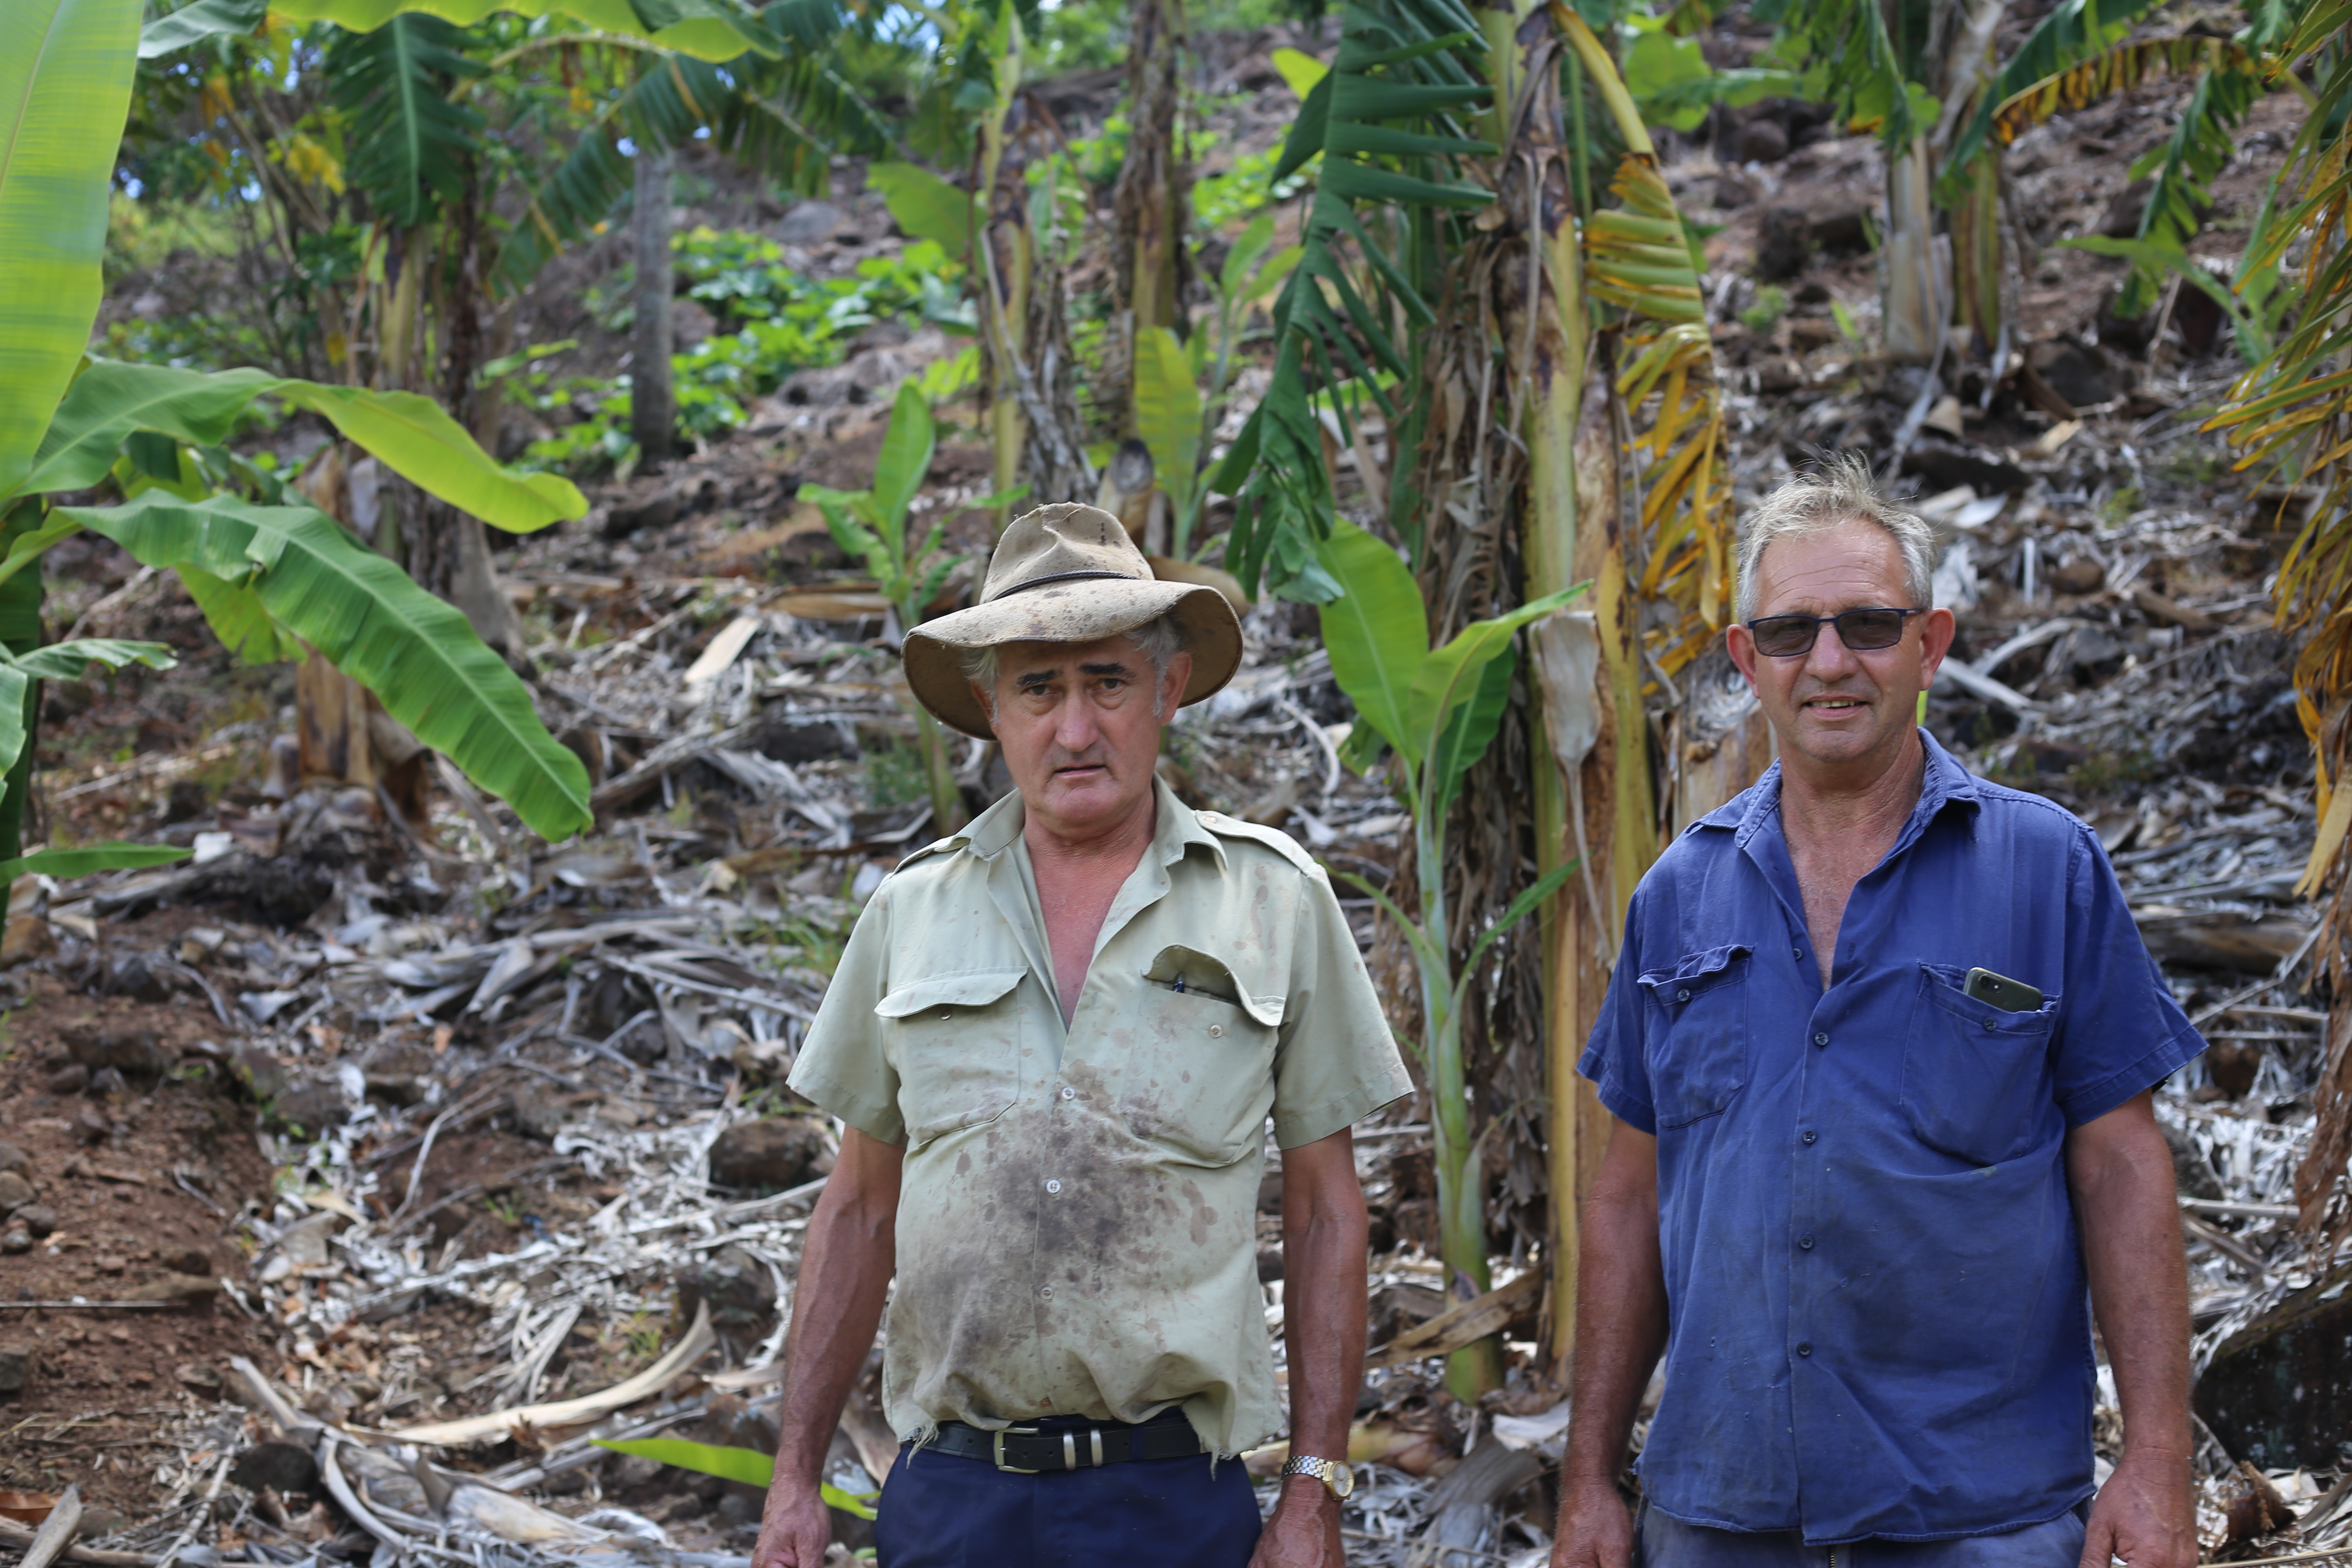 Brothers Brian and Ian Luxton on their property in South East Queensland.